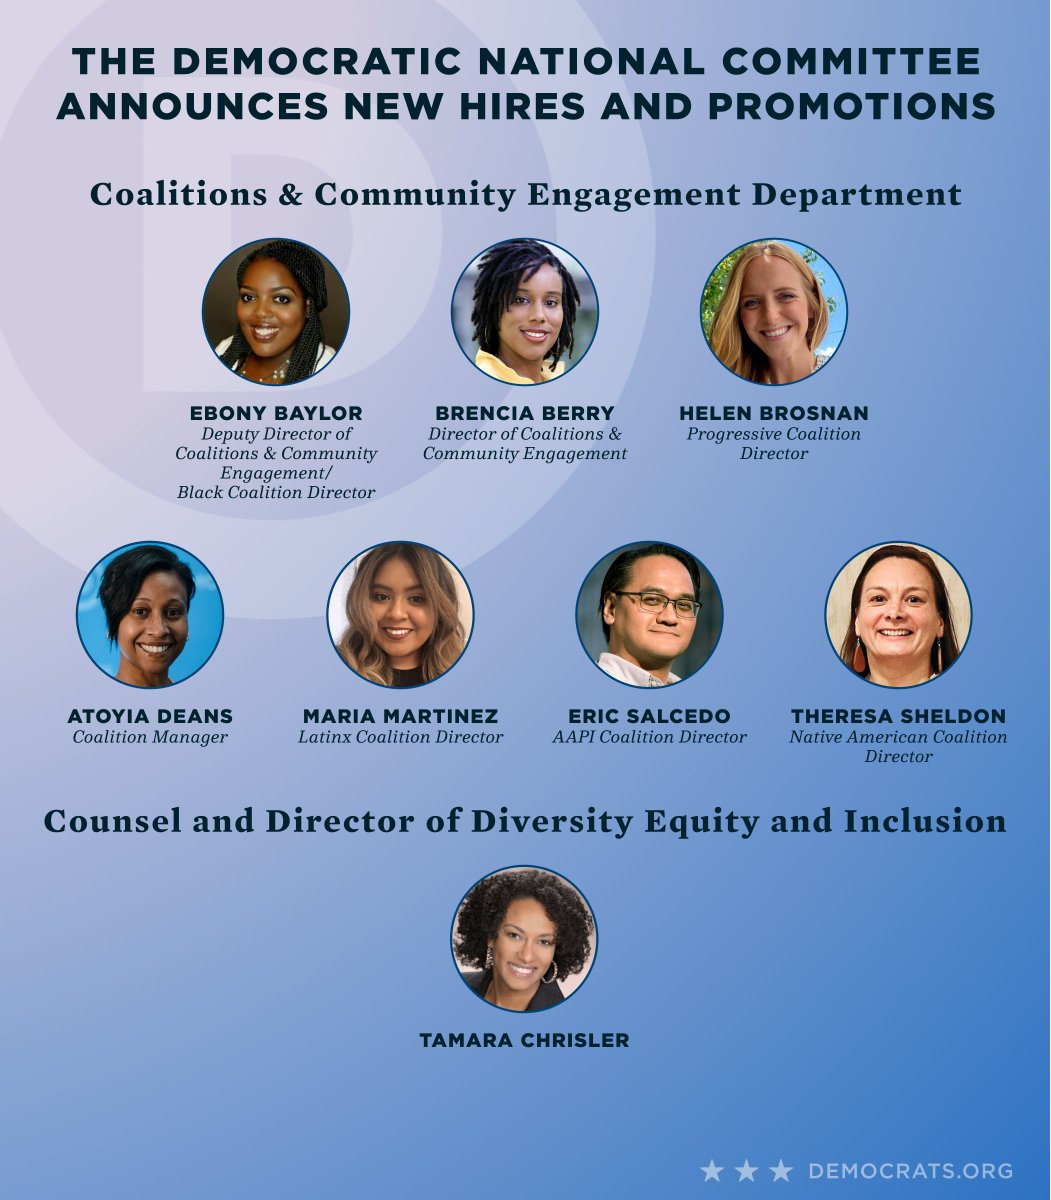 The Democratic National Committee is proud to announce the creation of the Coalitions and Community Engagement Department, the creation of the Counsel and Director of Diversity, Equity, and Inclusion position and new hires to both the Coalitions and Mobilization Departments. https://t.co/ZjnBFTHTSD